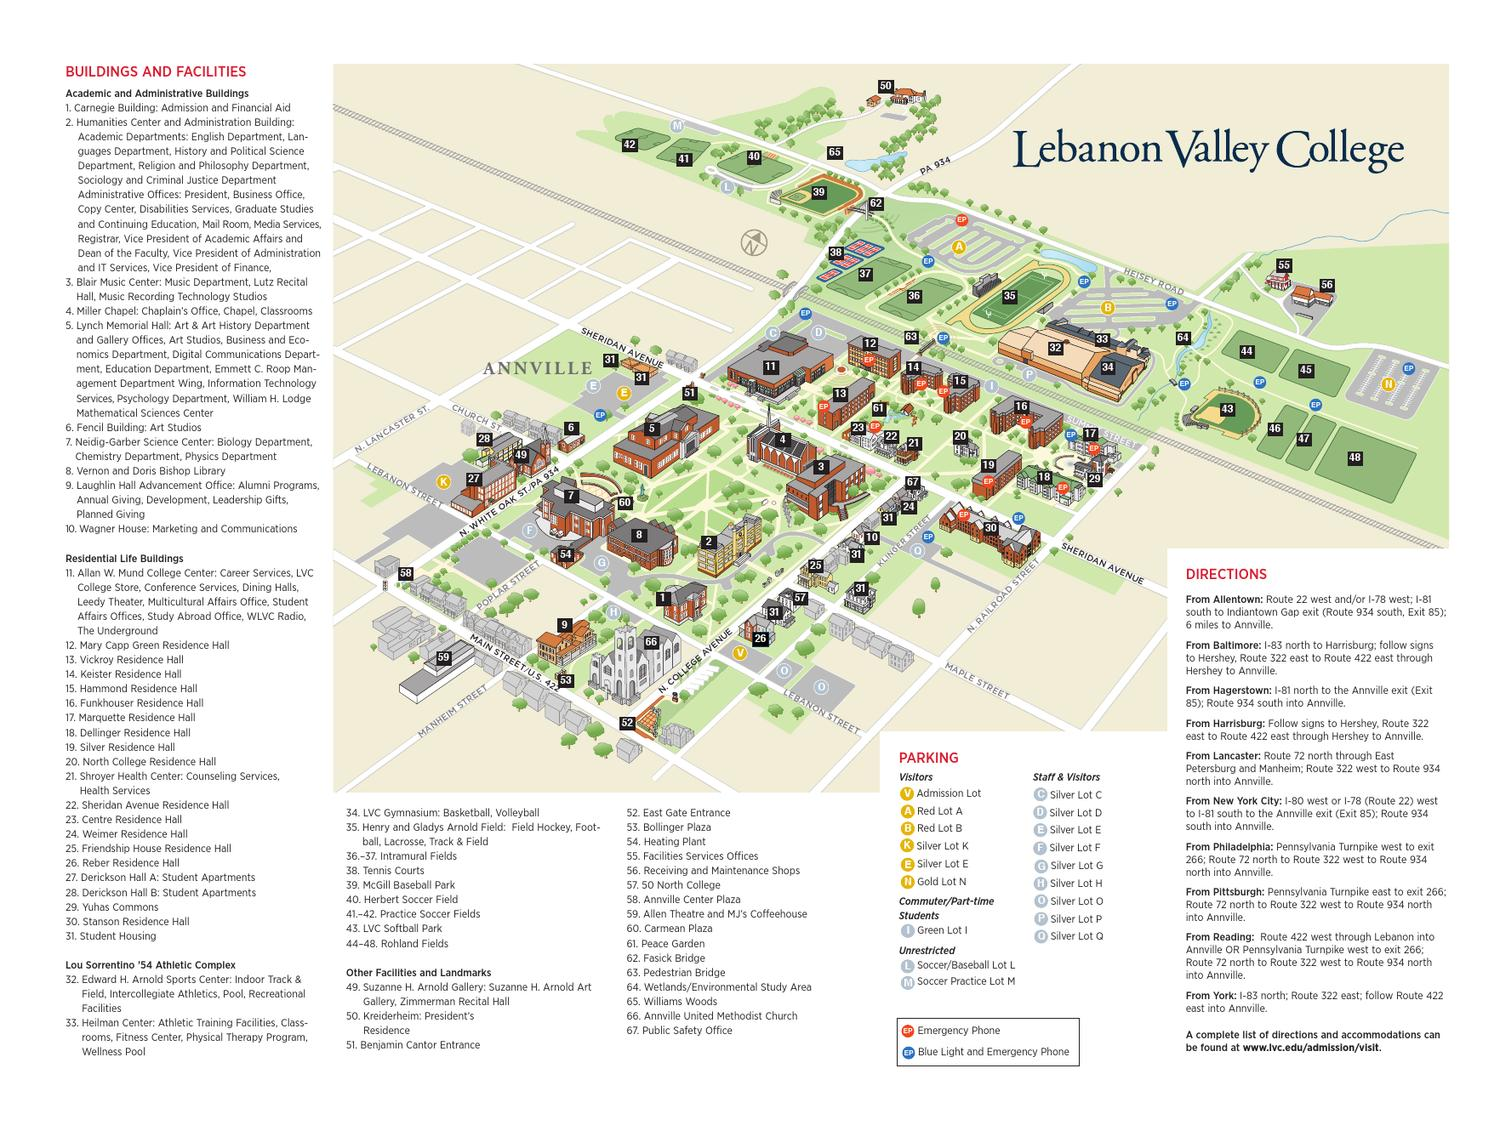 Lebanon Valley College Campus Map.Come See For Yourself Lvc Campus Map Brochure By Lebanon Valley